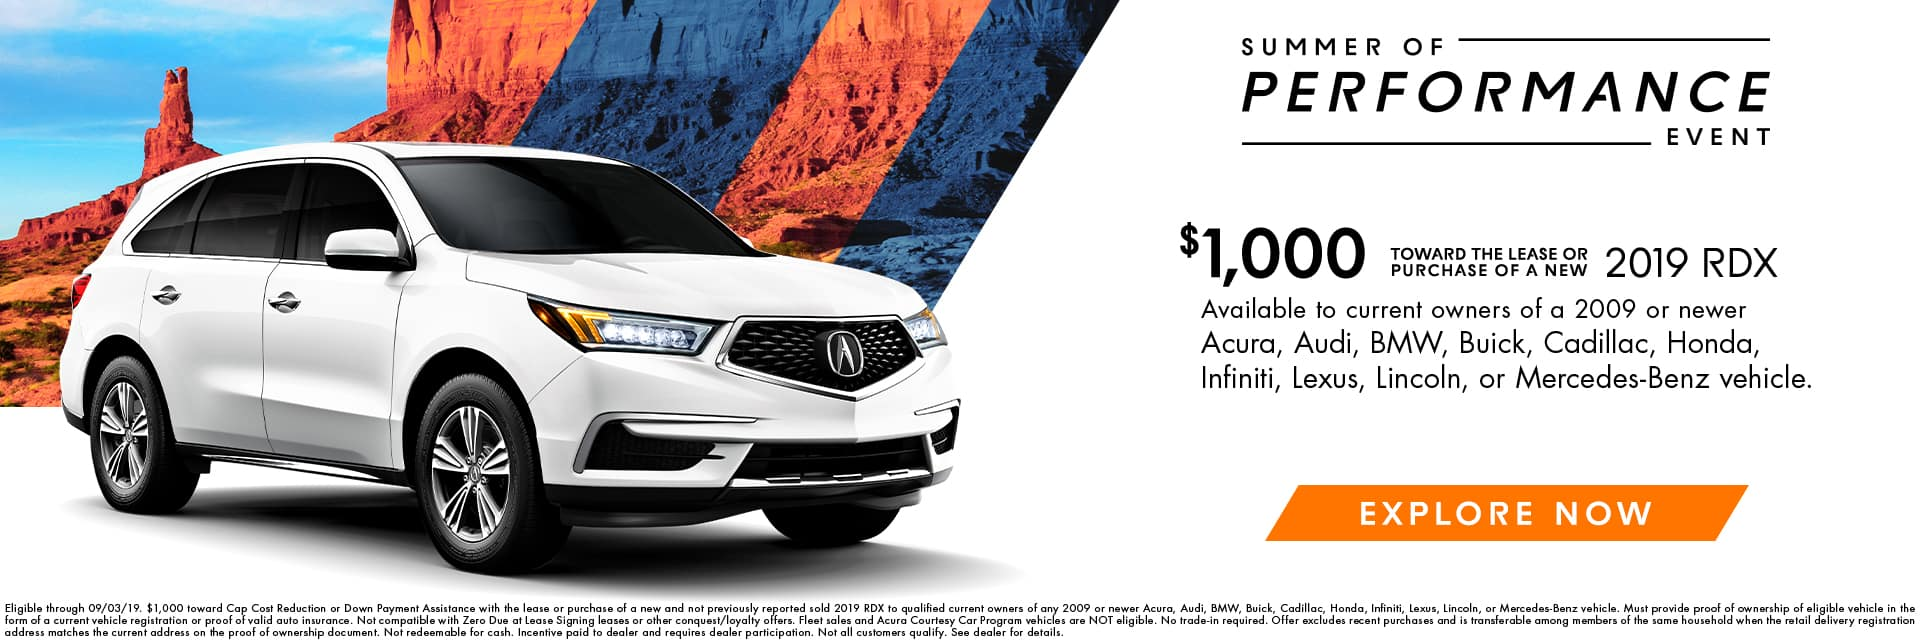 Infiniti Dealership Columbus Ohio >> Lindsay Acura Acura Dealer In Columbus Oh